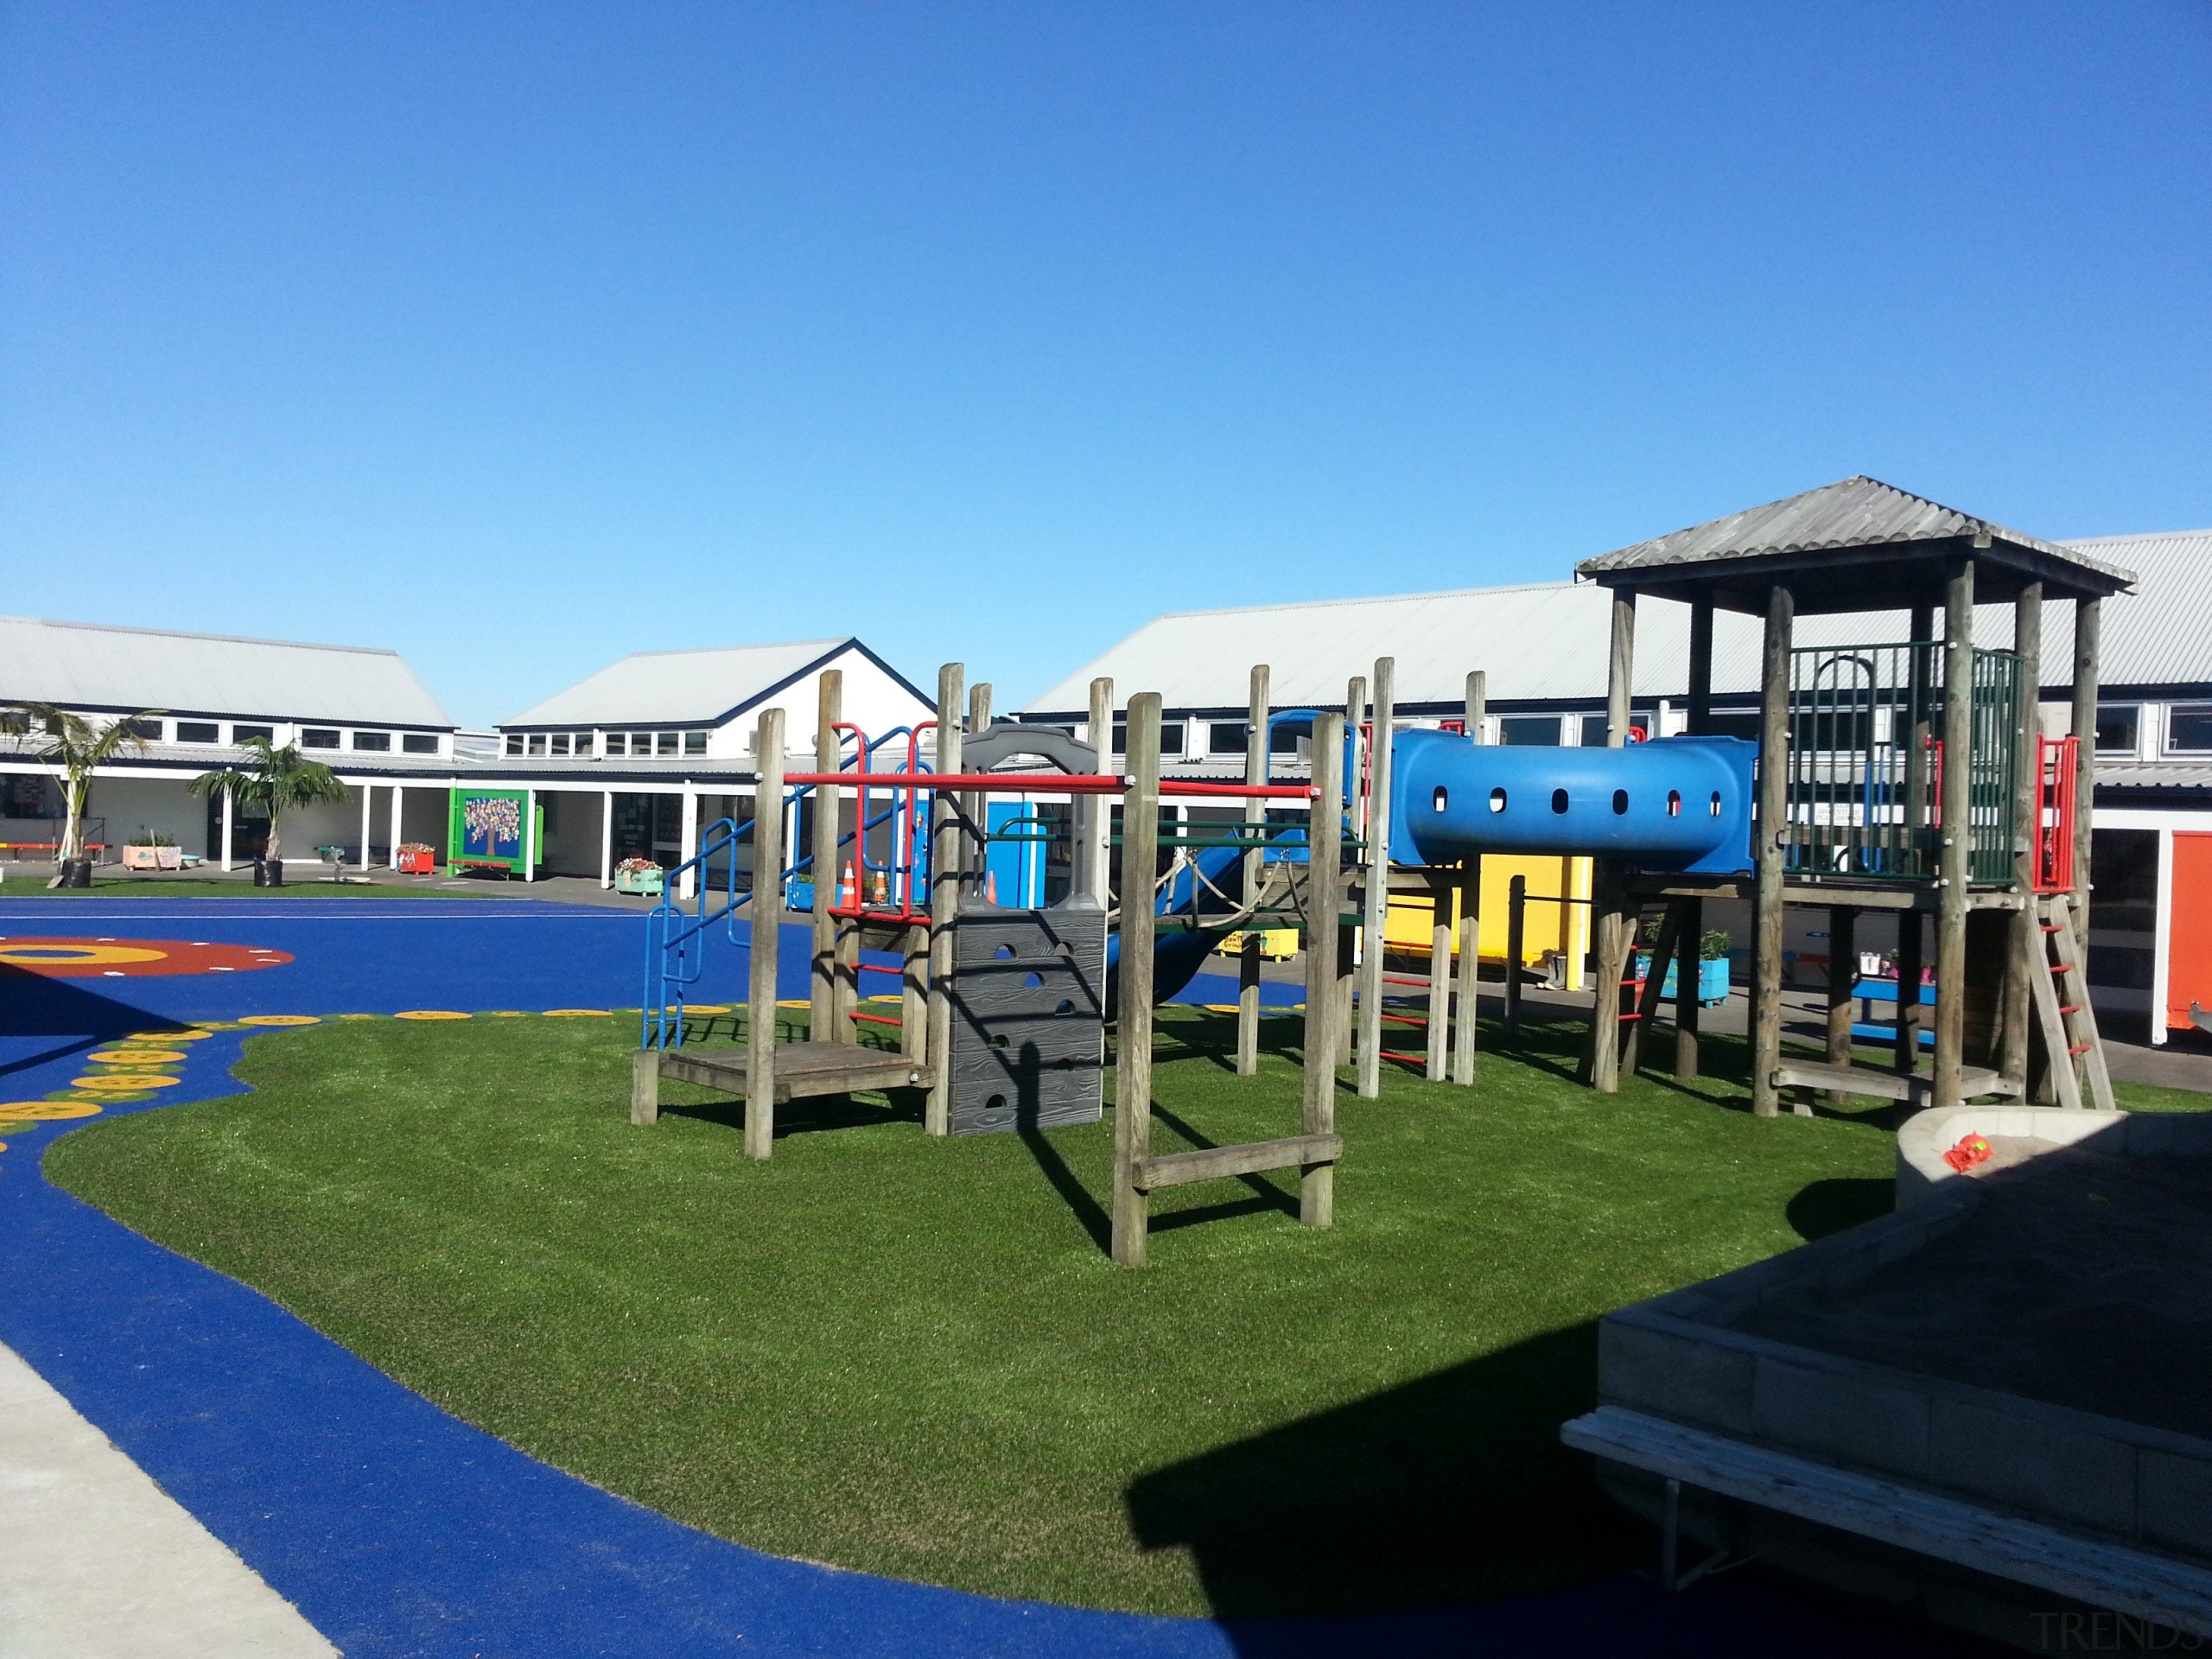 Pre-school, primary & seconday education - Pre-school, primary city, leisure, outdoor play equipment, playground, public space, recreation, teal